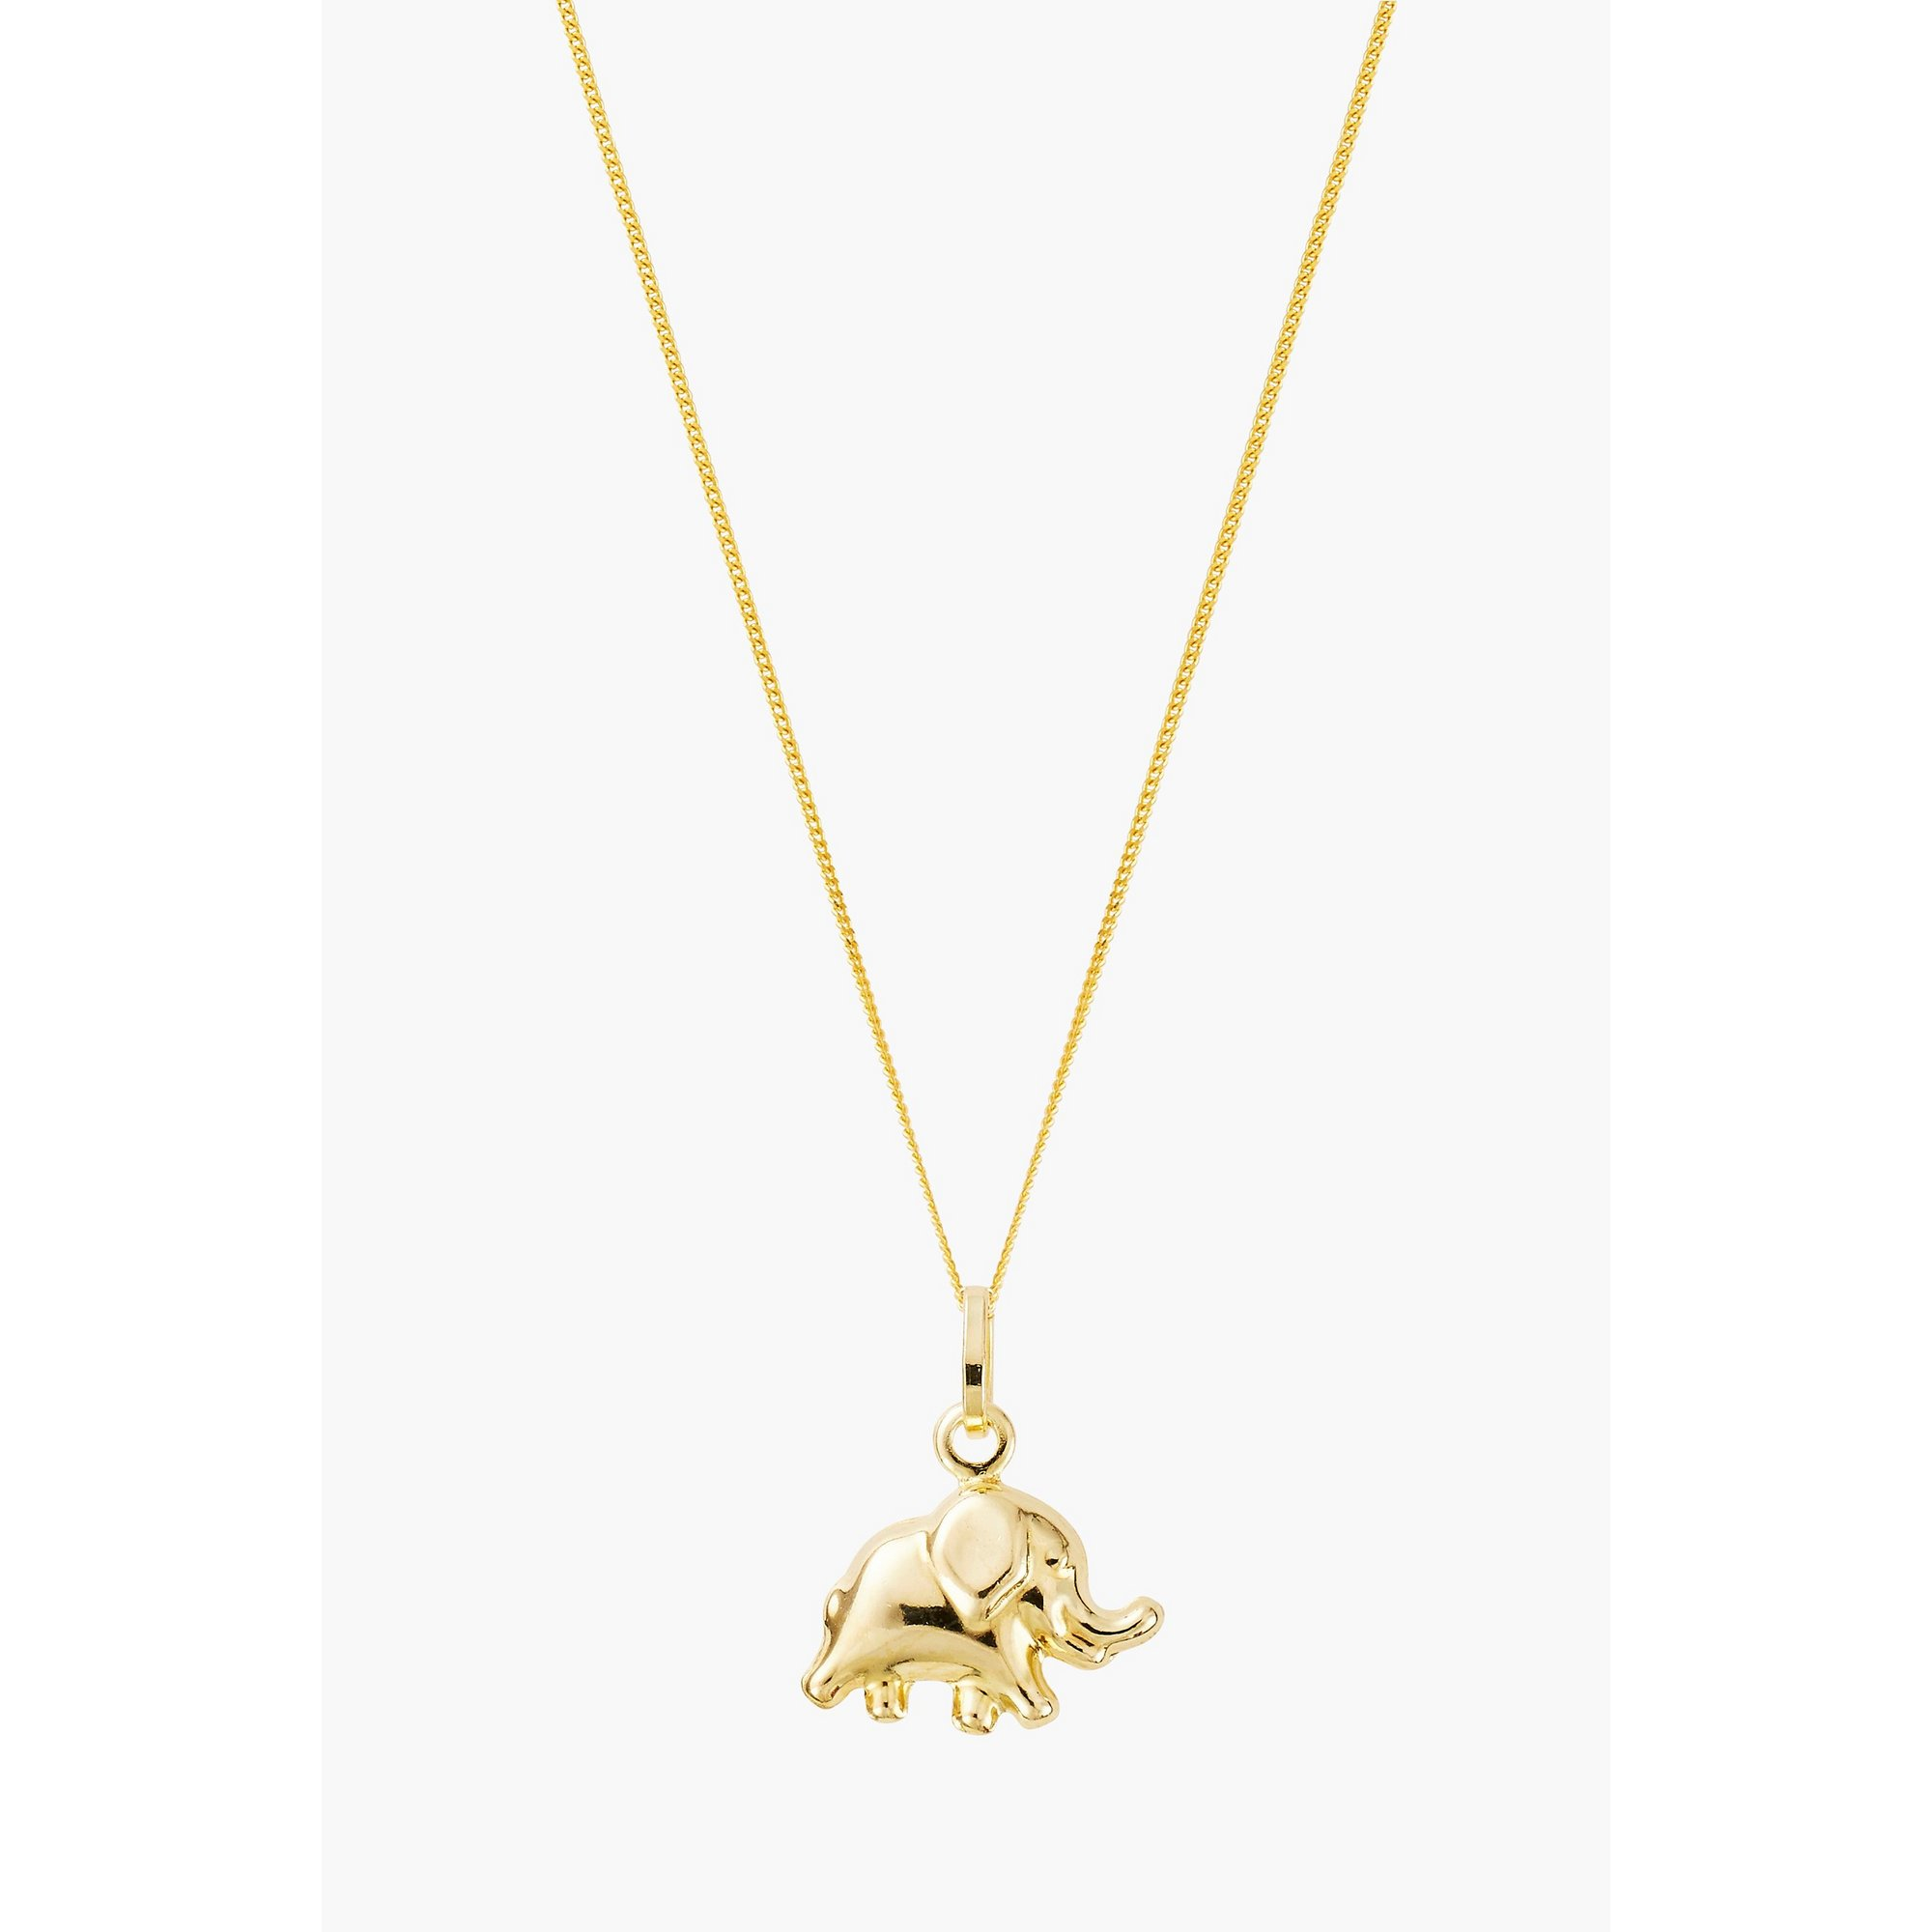 Image of 9ct Gold Mini Elephant Pendant